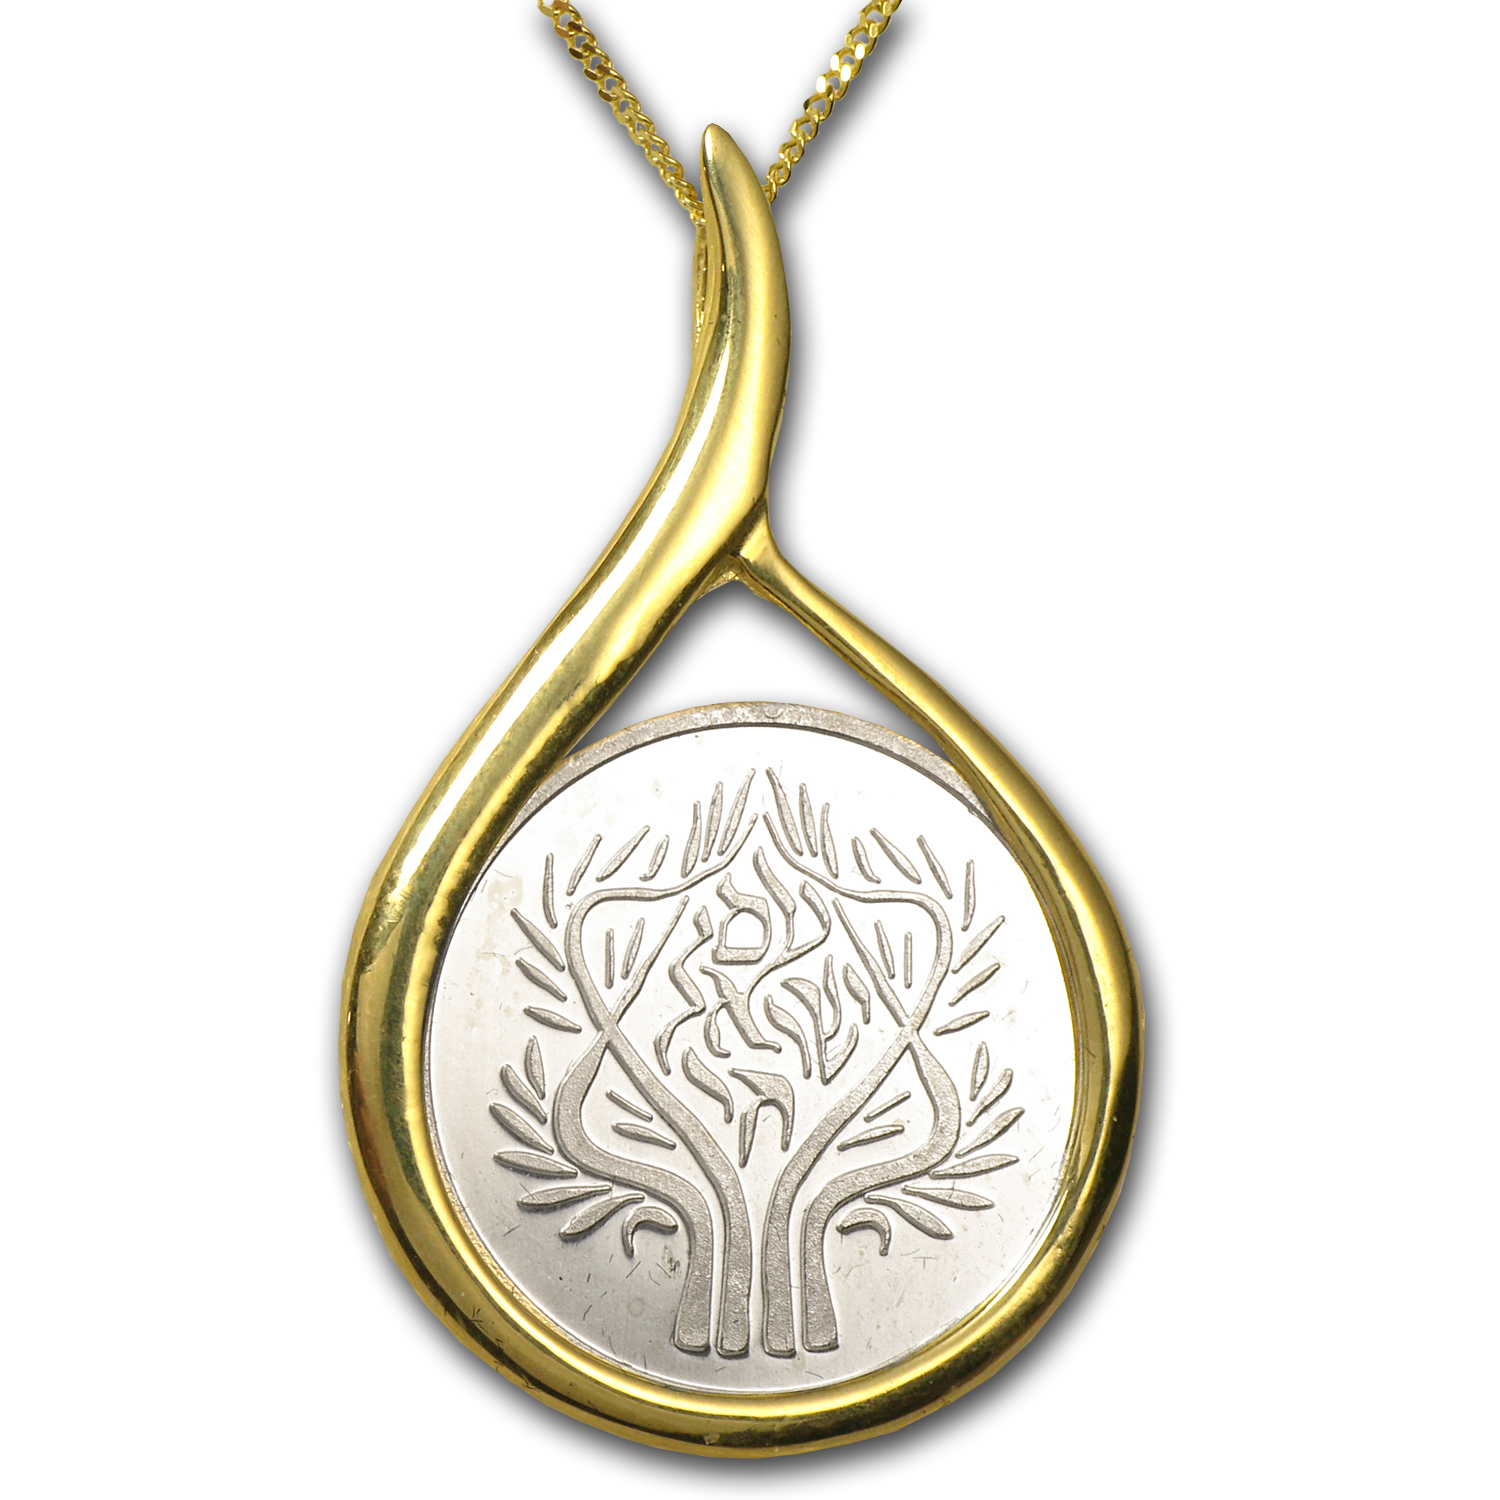 Israel Tree of Life Silver Medal with Gold Pendant